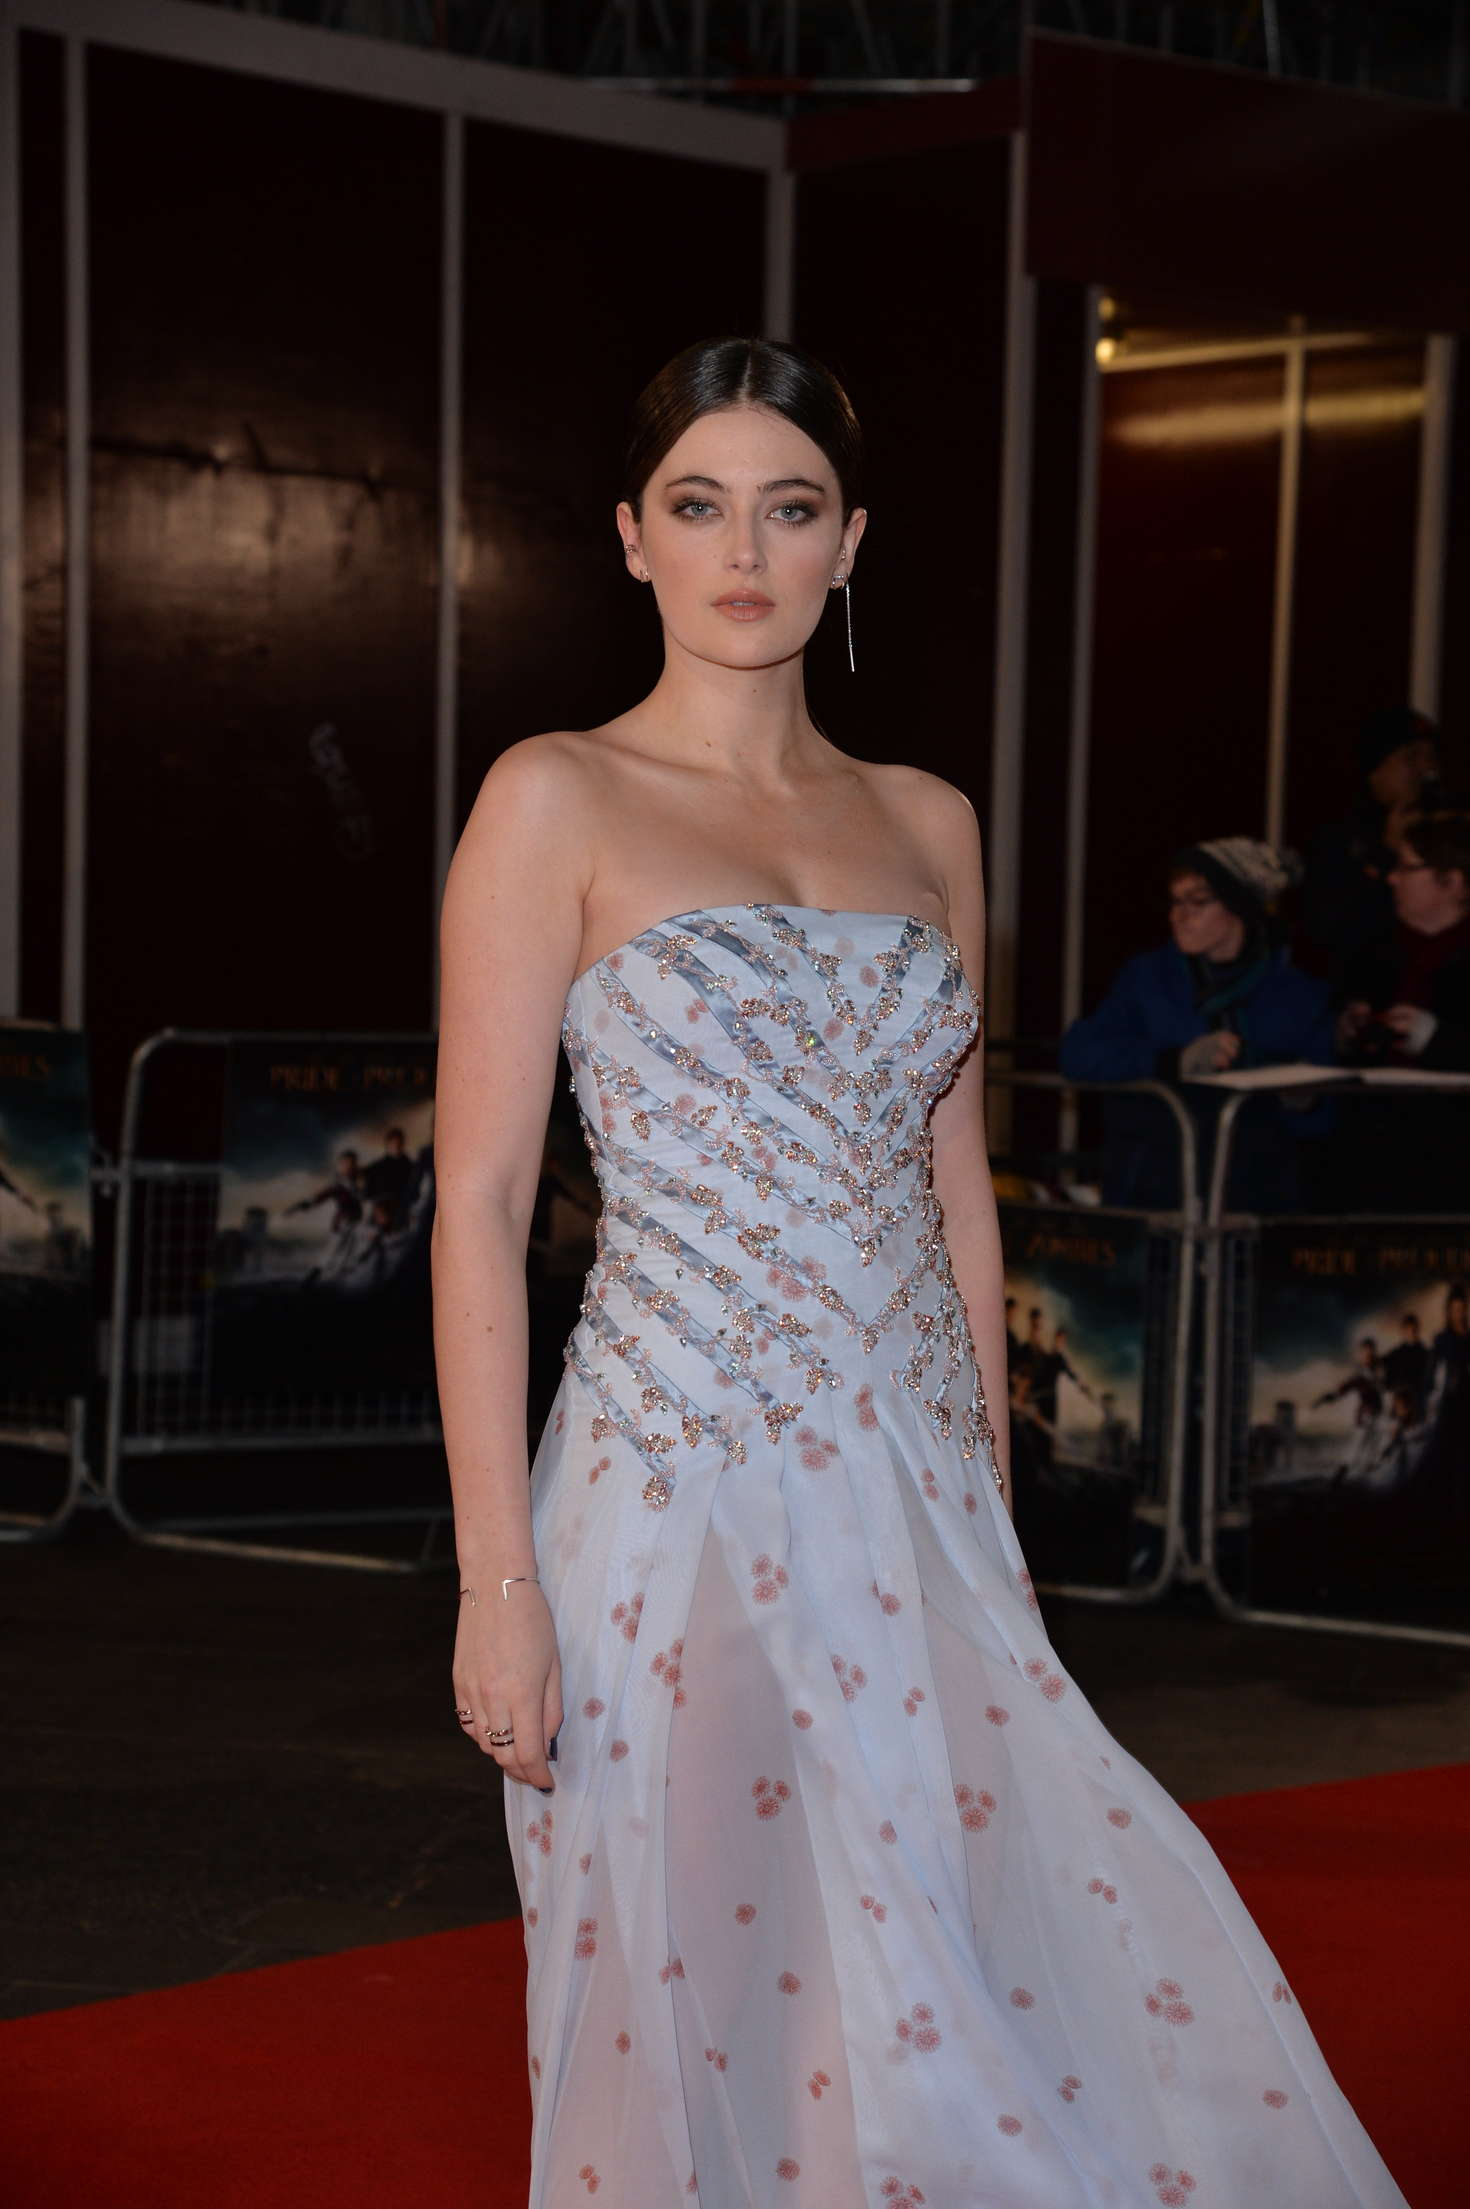 Millie Brady Pride and Prejudice and Zombies Premiere in London